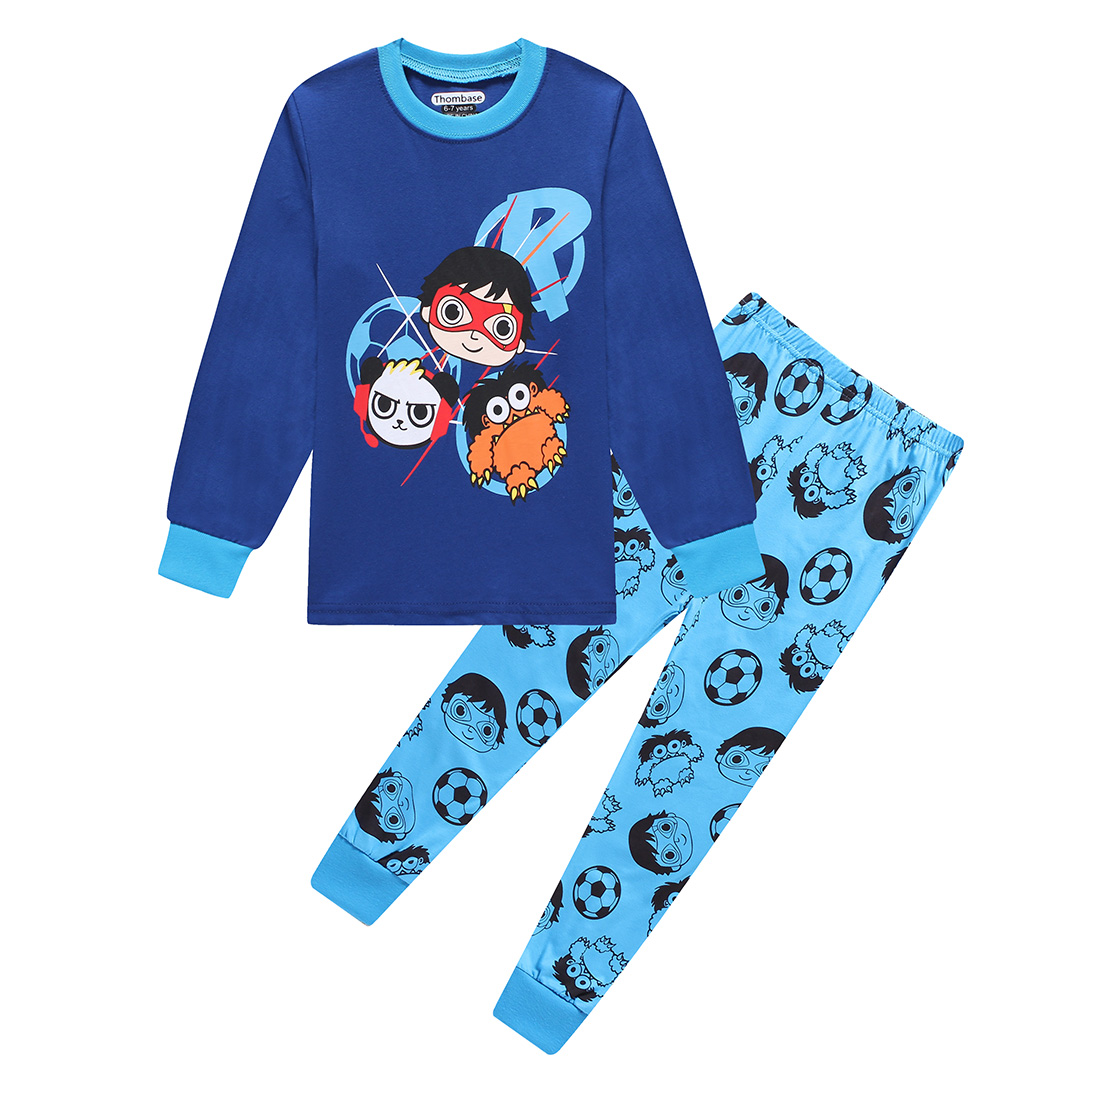 Baby Boy Girl Ryan Toys Review Christmas Pajamas Ryan's World Toddler Boys Xmas Pyjamas Pjs Tops Kids Children Sleepwear Pijamas